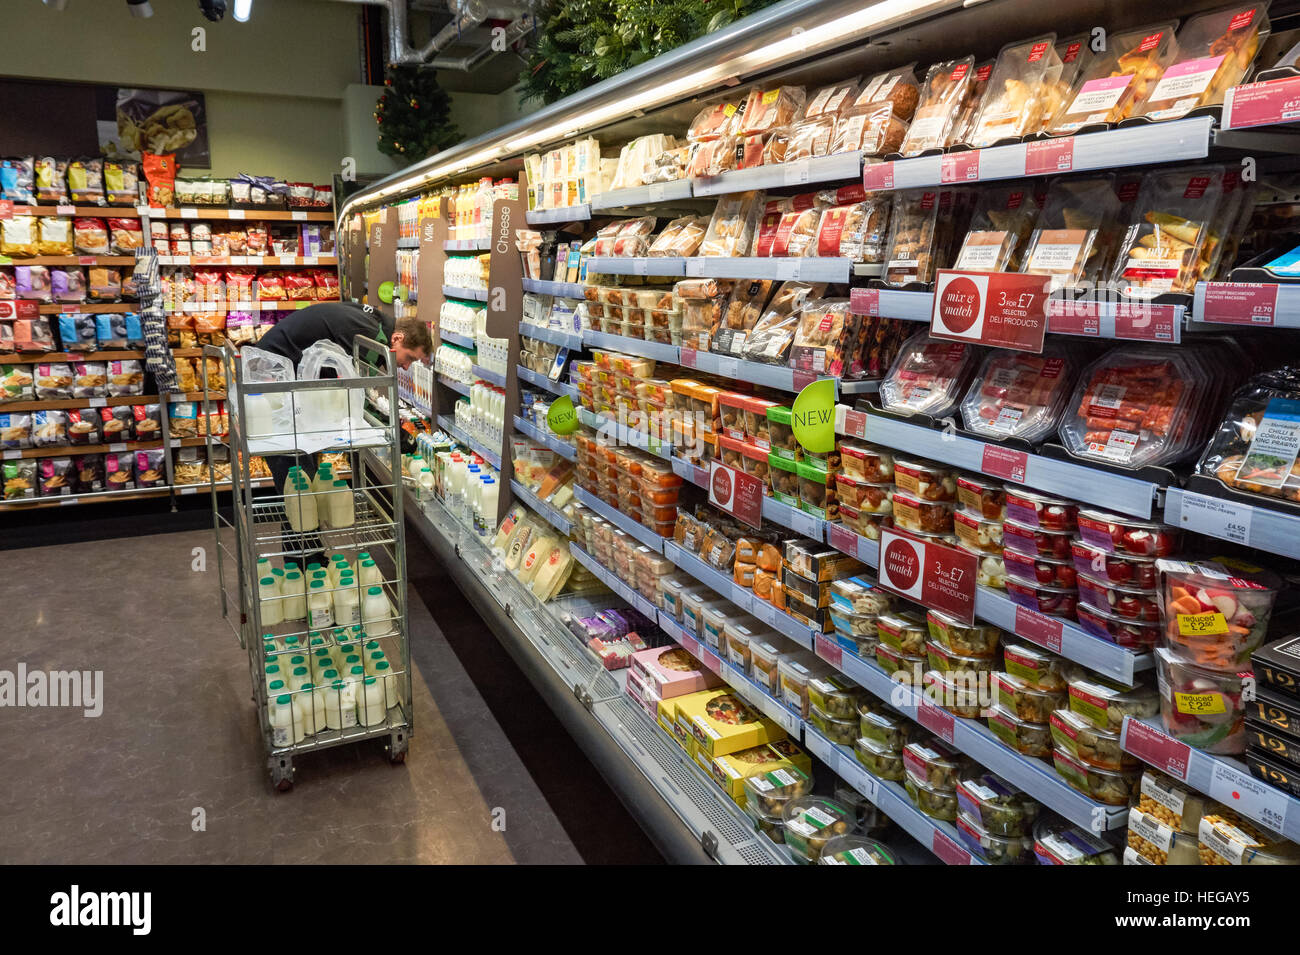 marks and spencers 12 reviews of marks and spencer if you're passing through paddington station you might need a snack (especially if you poorly timed your trip, the trains are running late, or both are happening to you at the same time) but the food court area.